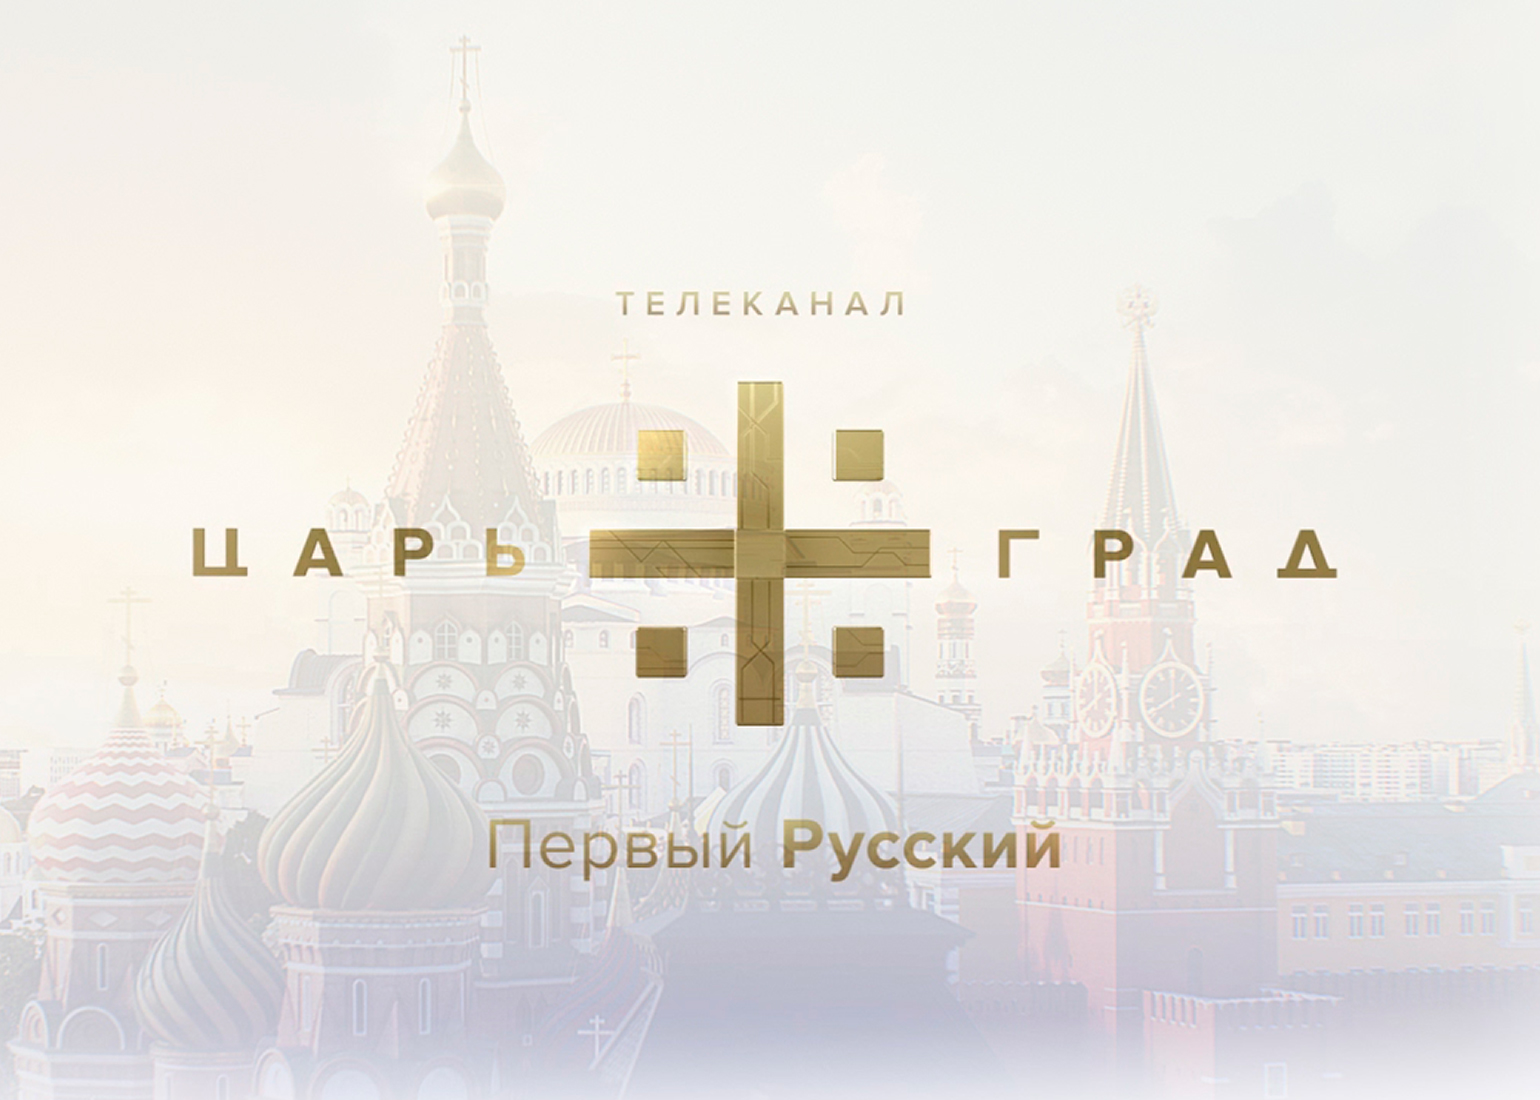 Svyatoslav Andrianov on the Prospects of German-Russian Relations on Tsargrad-TV